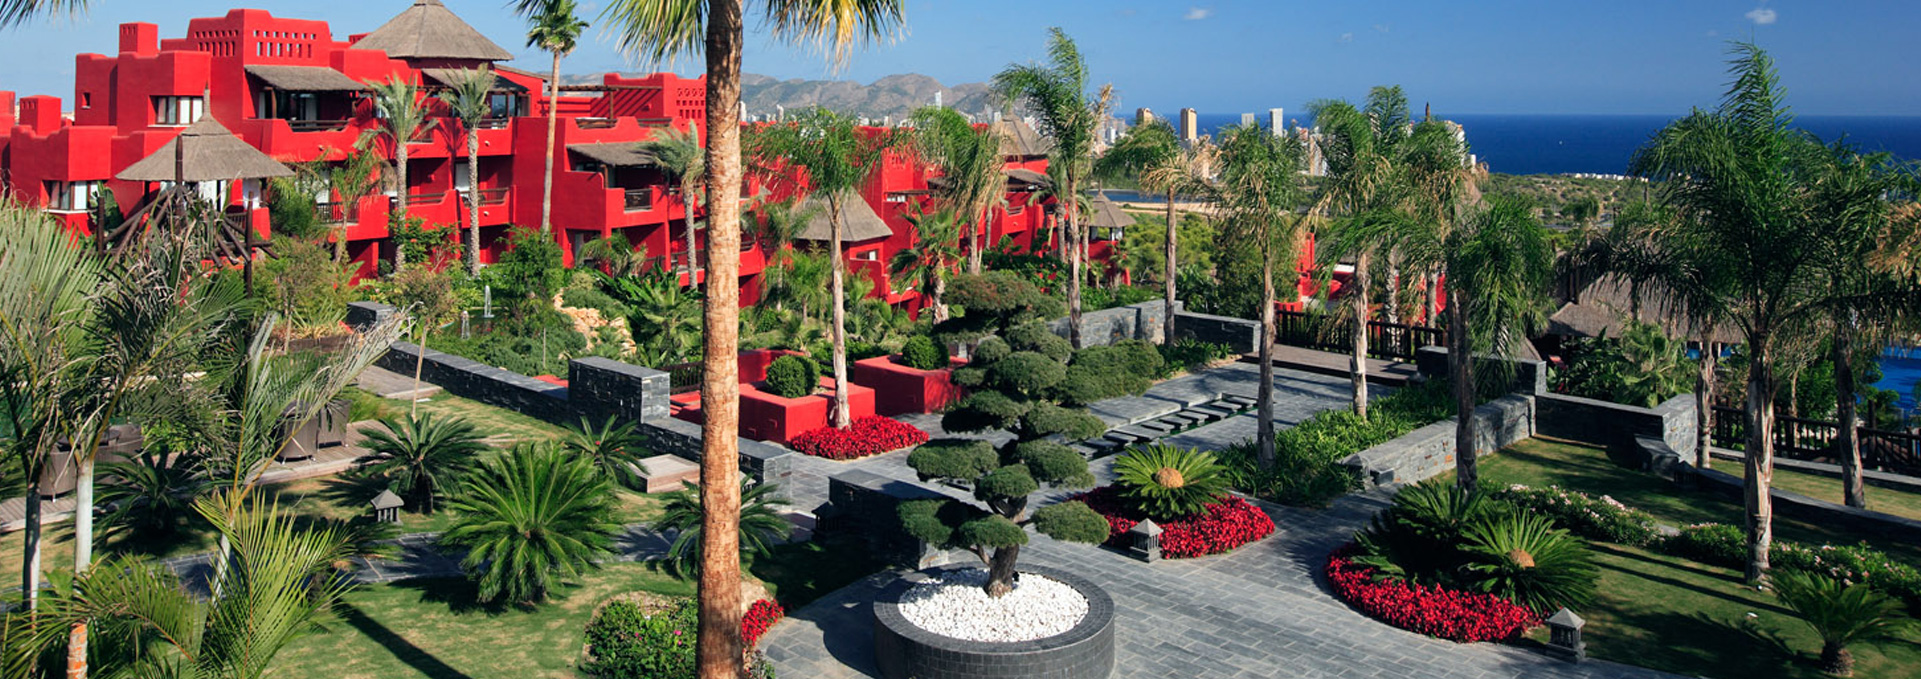 5 star resorts in spain bonsai asia gardens hotel. Black Bedroom Furniture Sets. Home Design Ideas